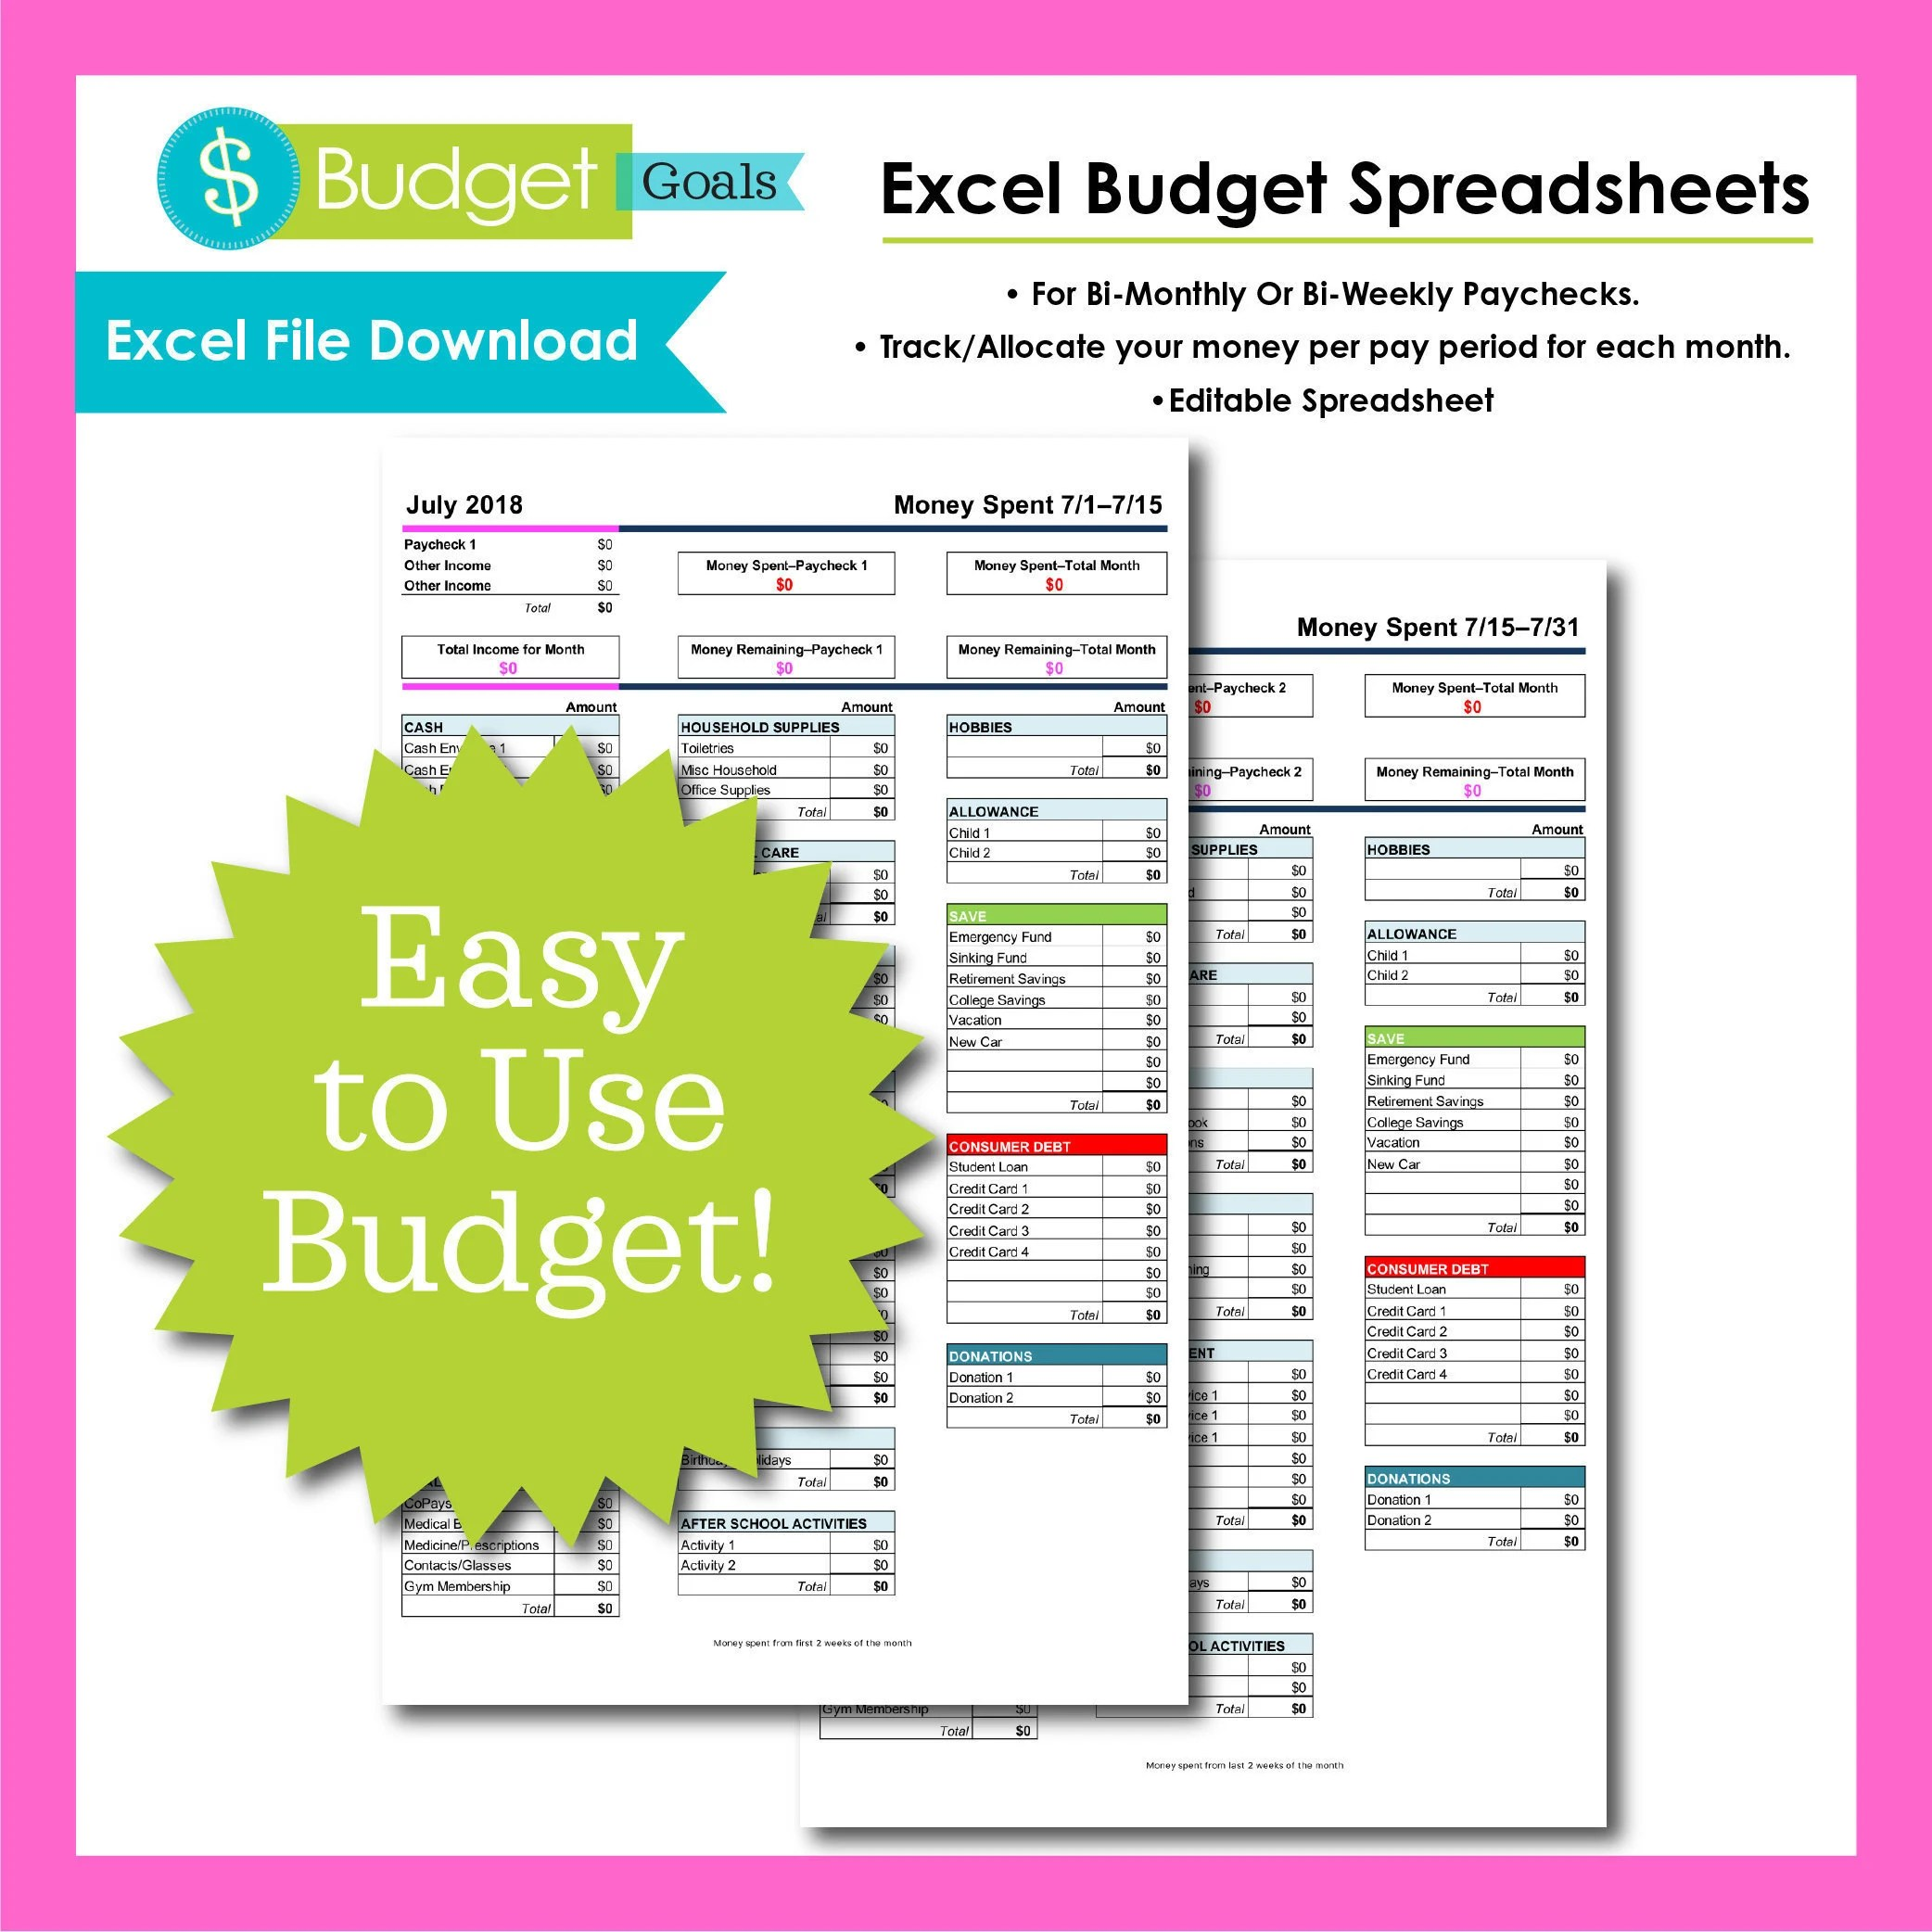 Budget templates | Etsy